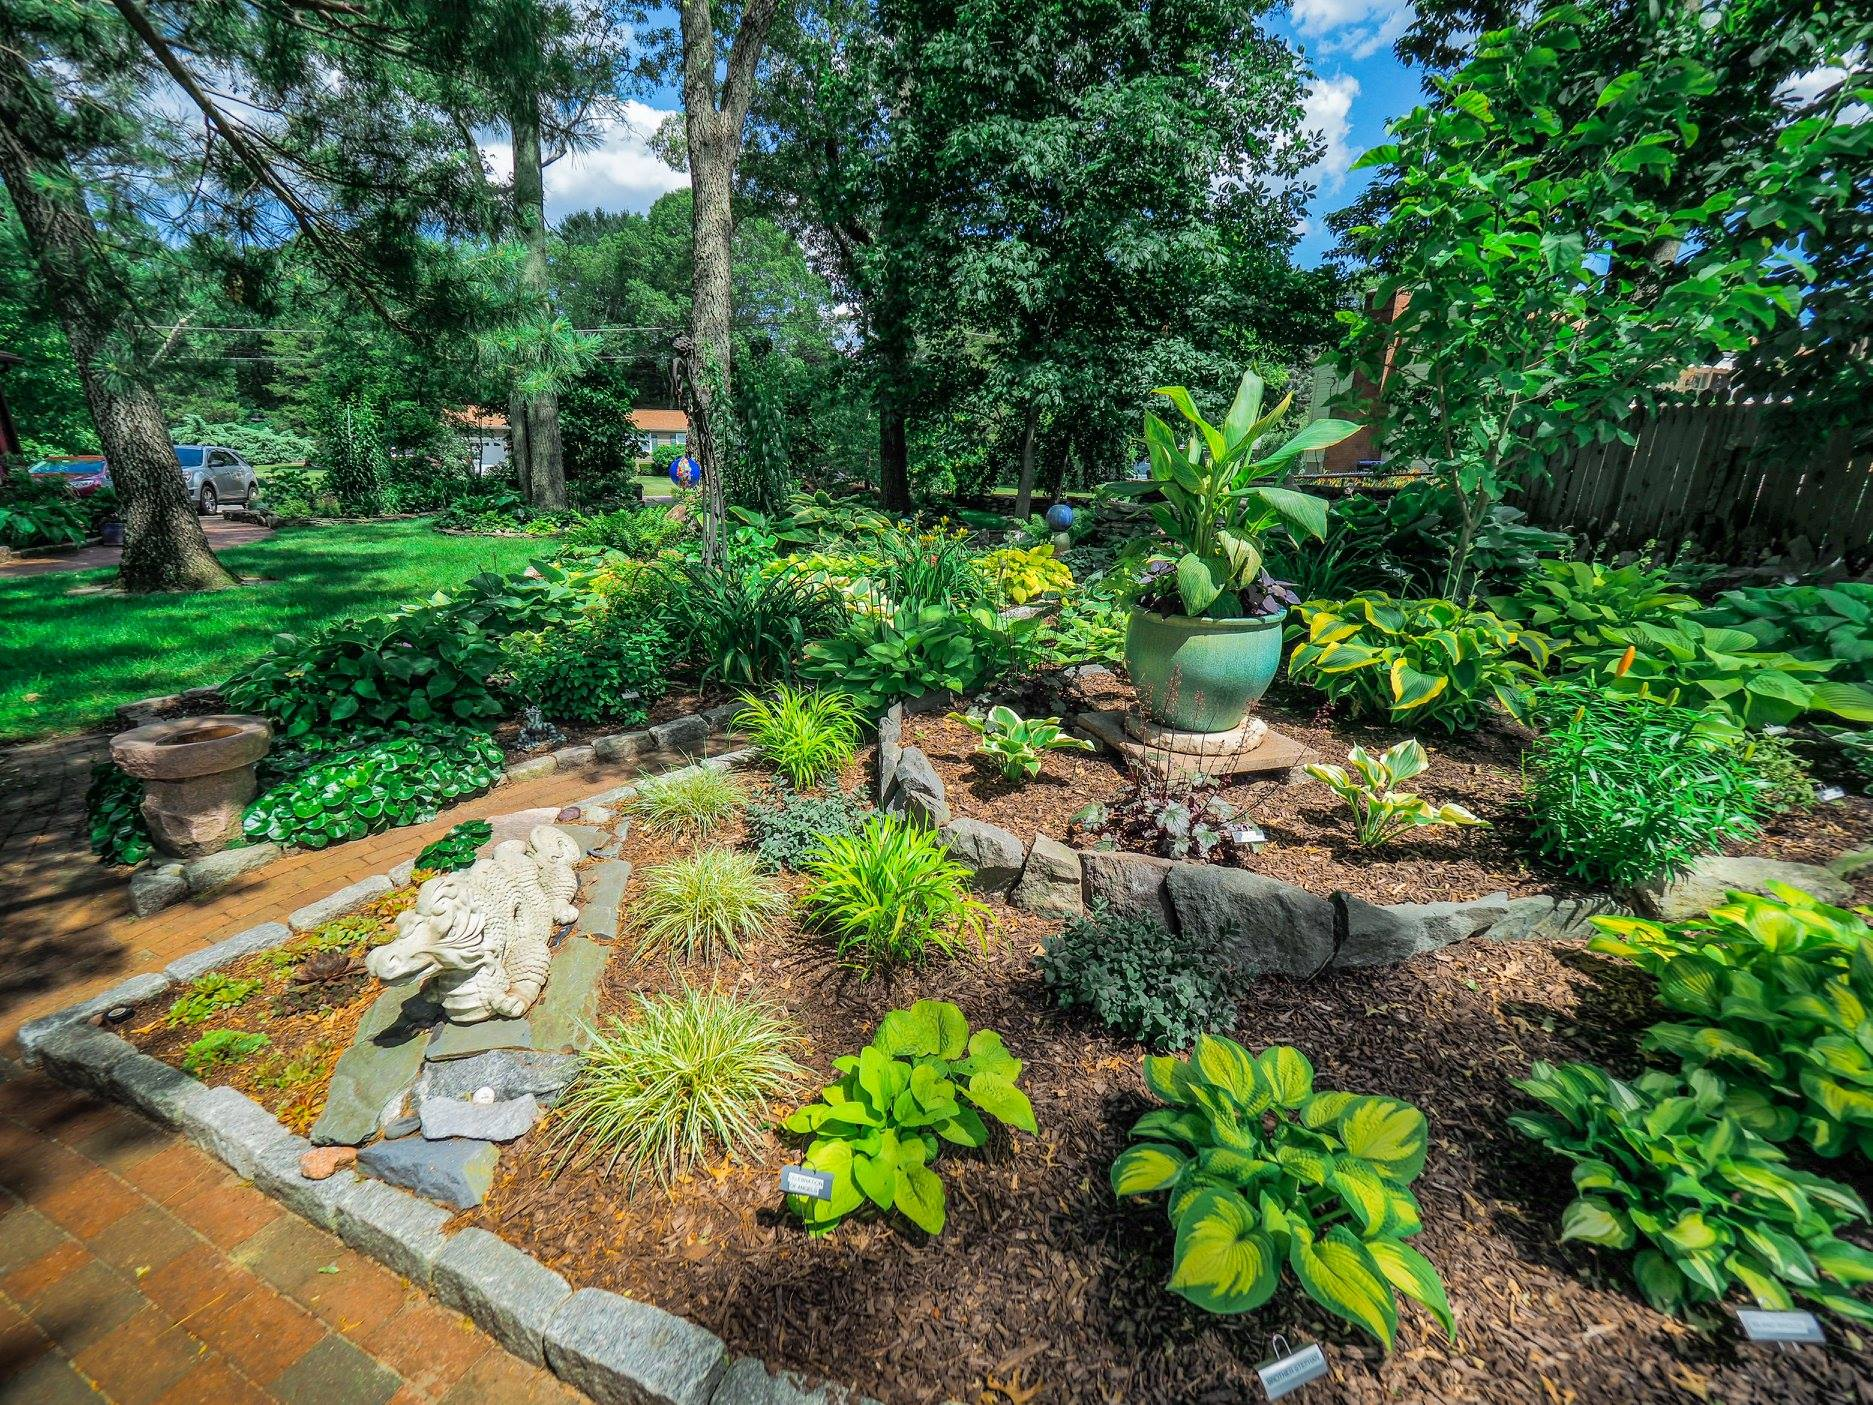 One of the gardens that will be featured